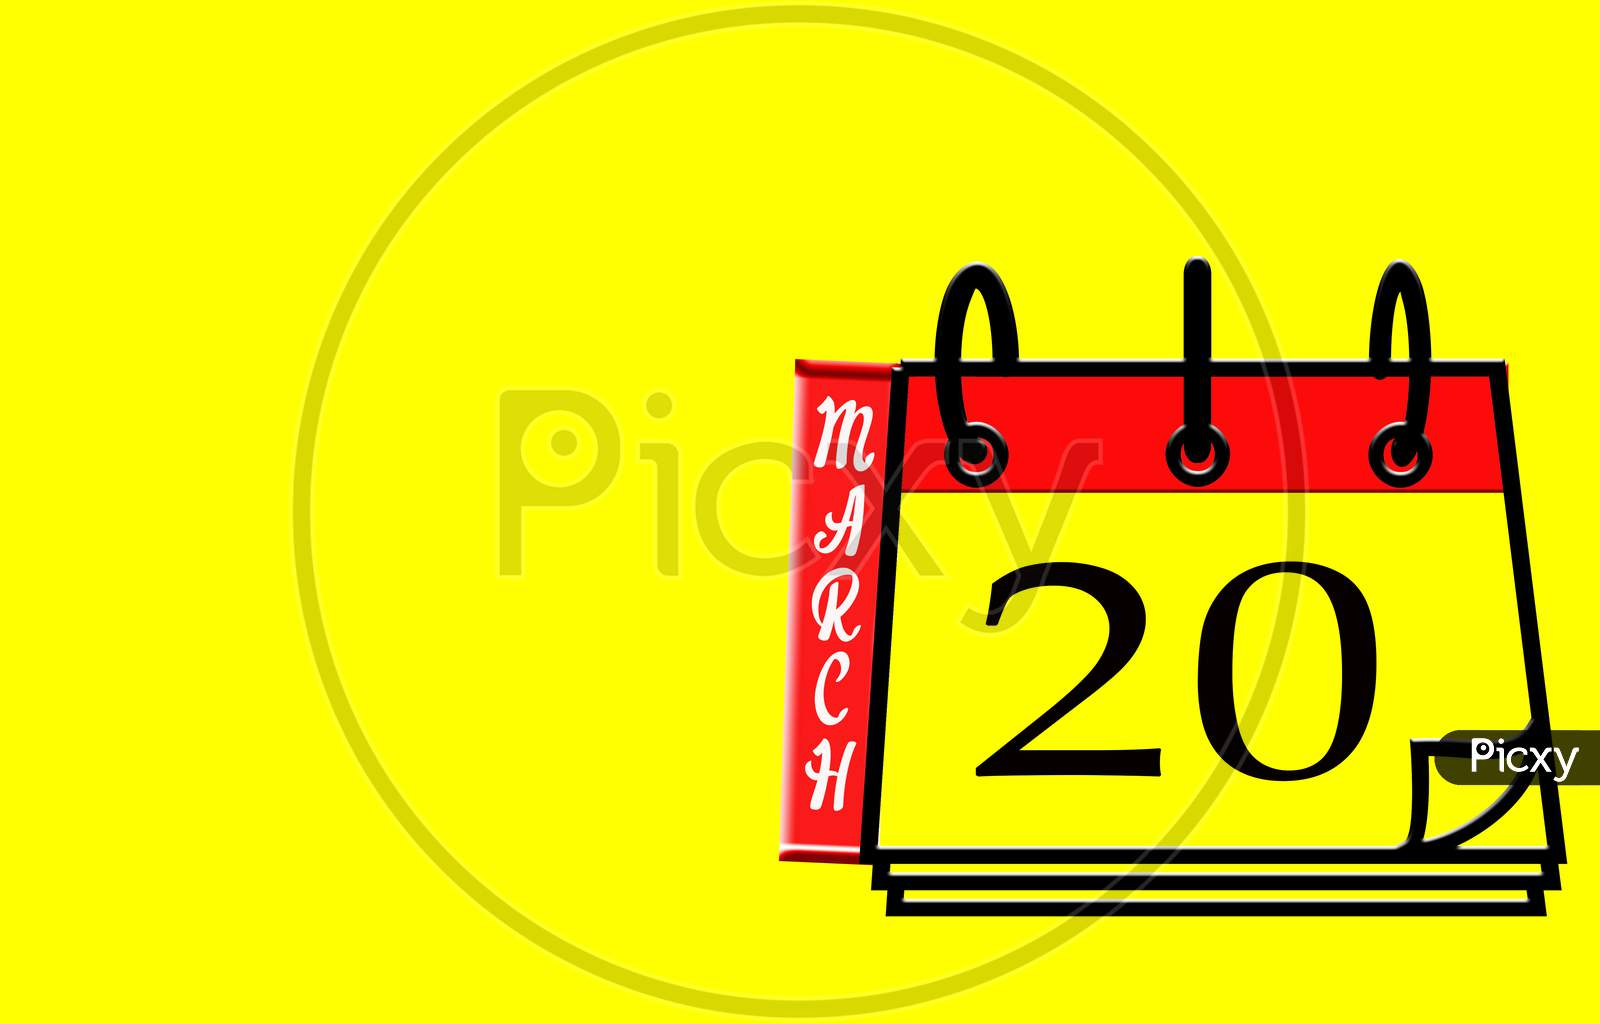 March 20, Calendar On Yellow Background